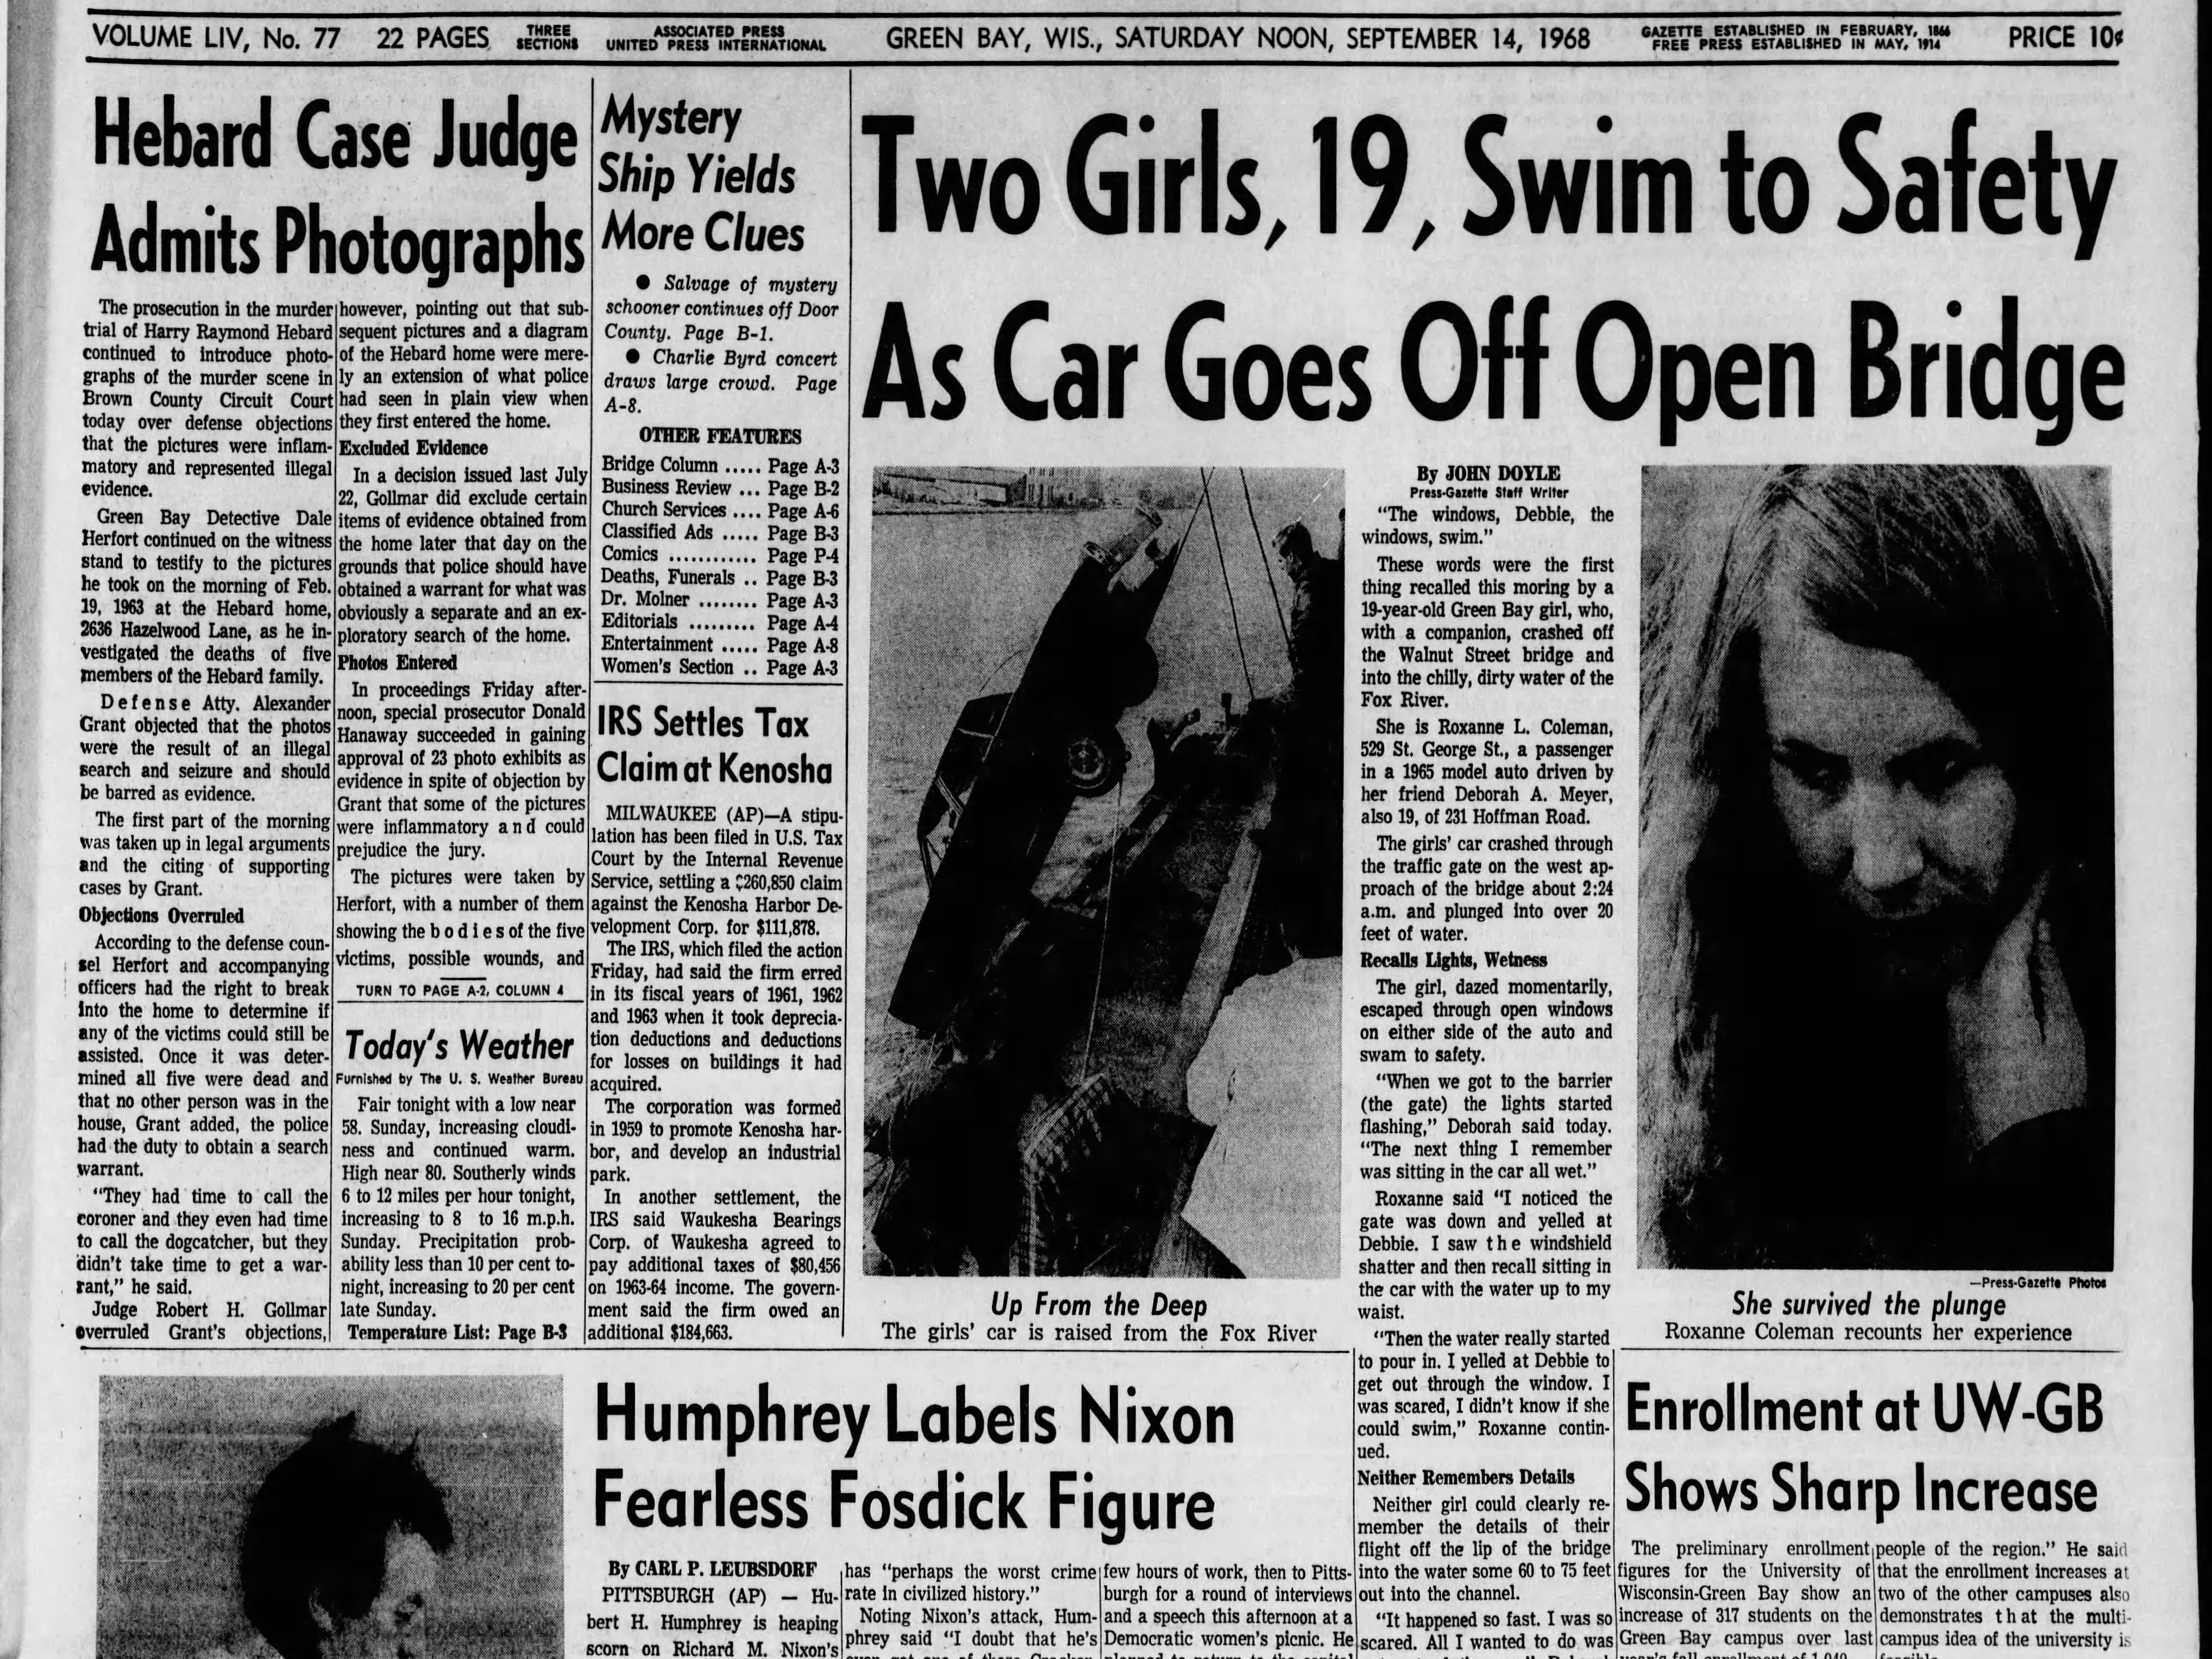 Today in History: Sept. 14, 1968